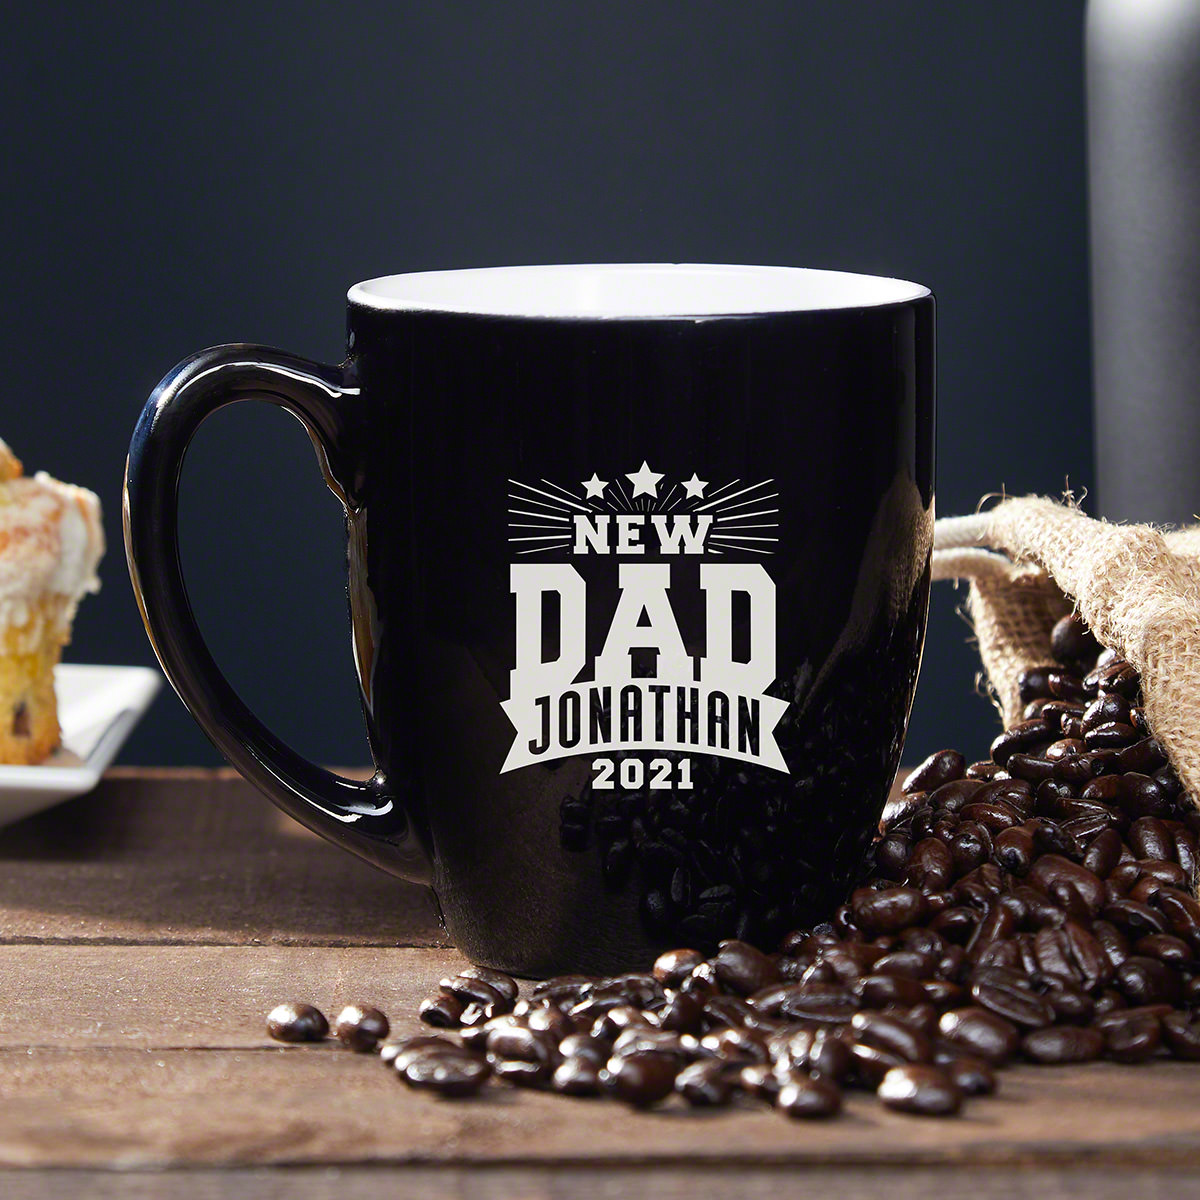 Looking for a nice gift for the new dad in your life? He's probably pretty tired now that his baby is here, and he would love a personalized coffee mug to use for his multiple cups of coffee every day! He'll love the fun design, which will give him a #mug